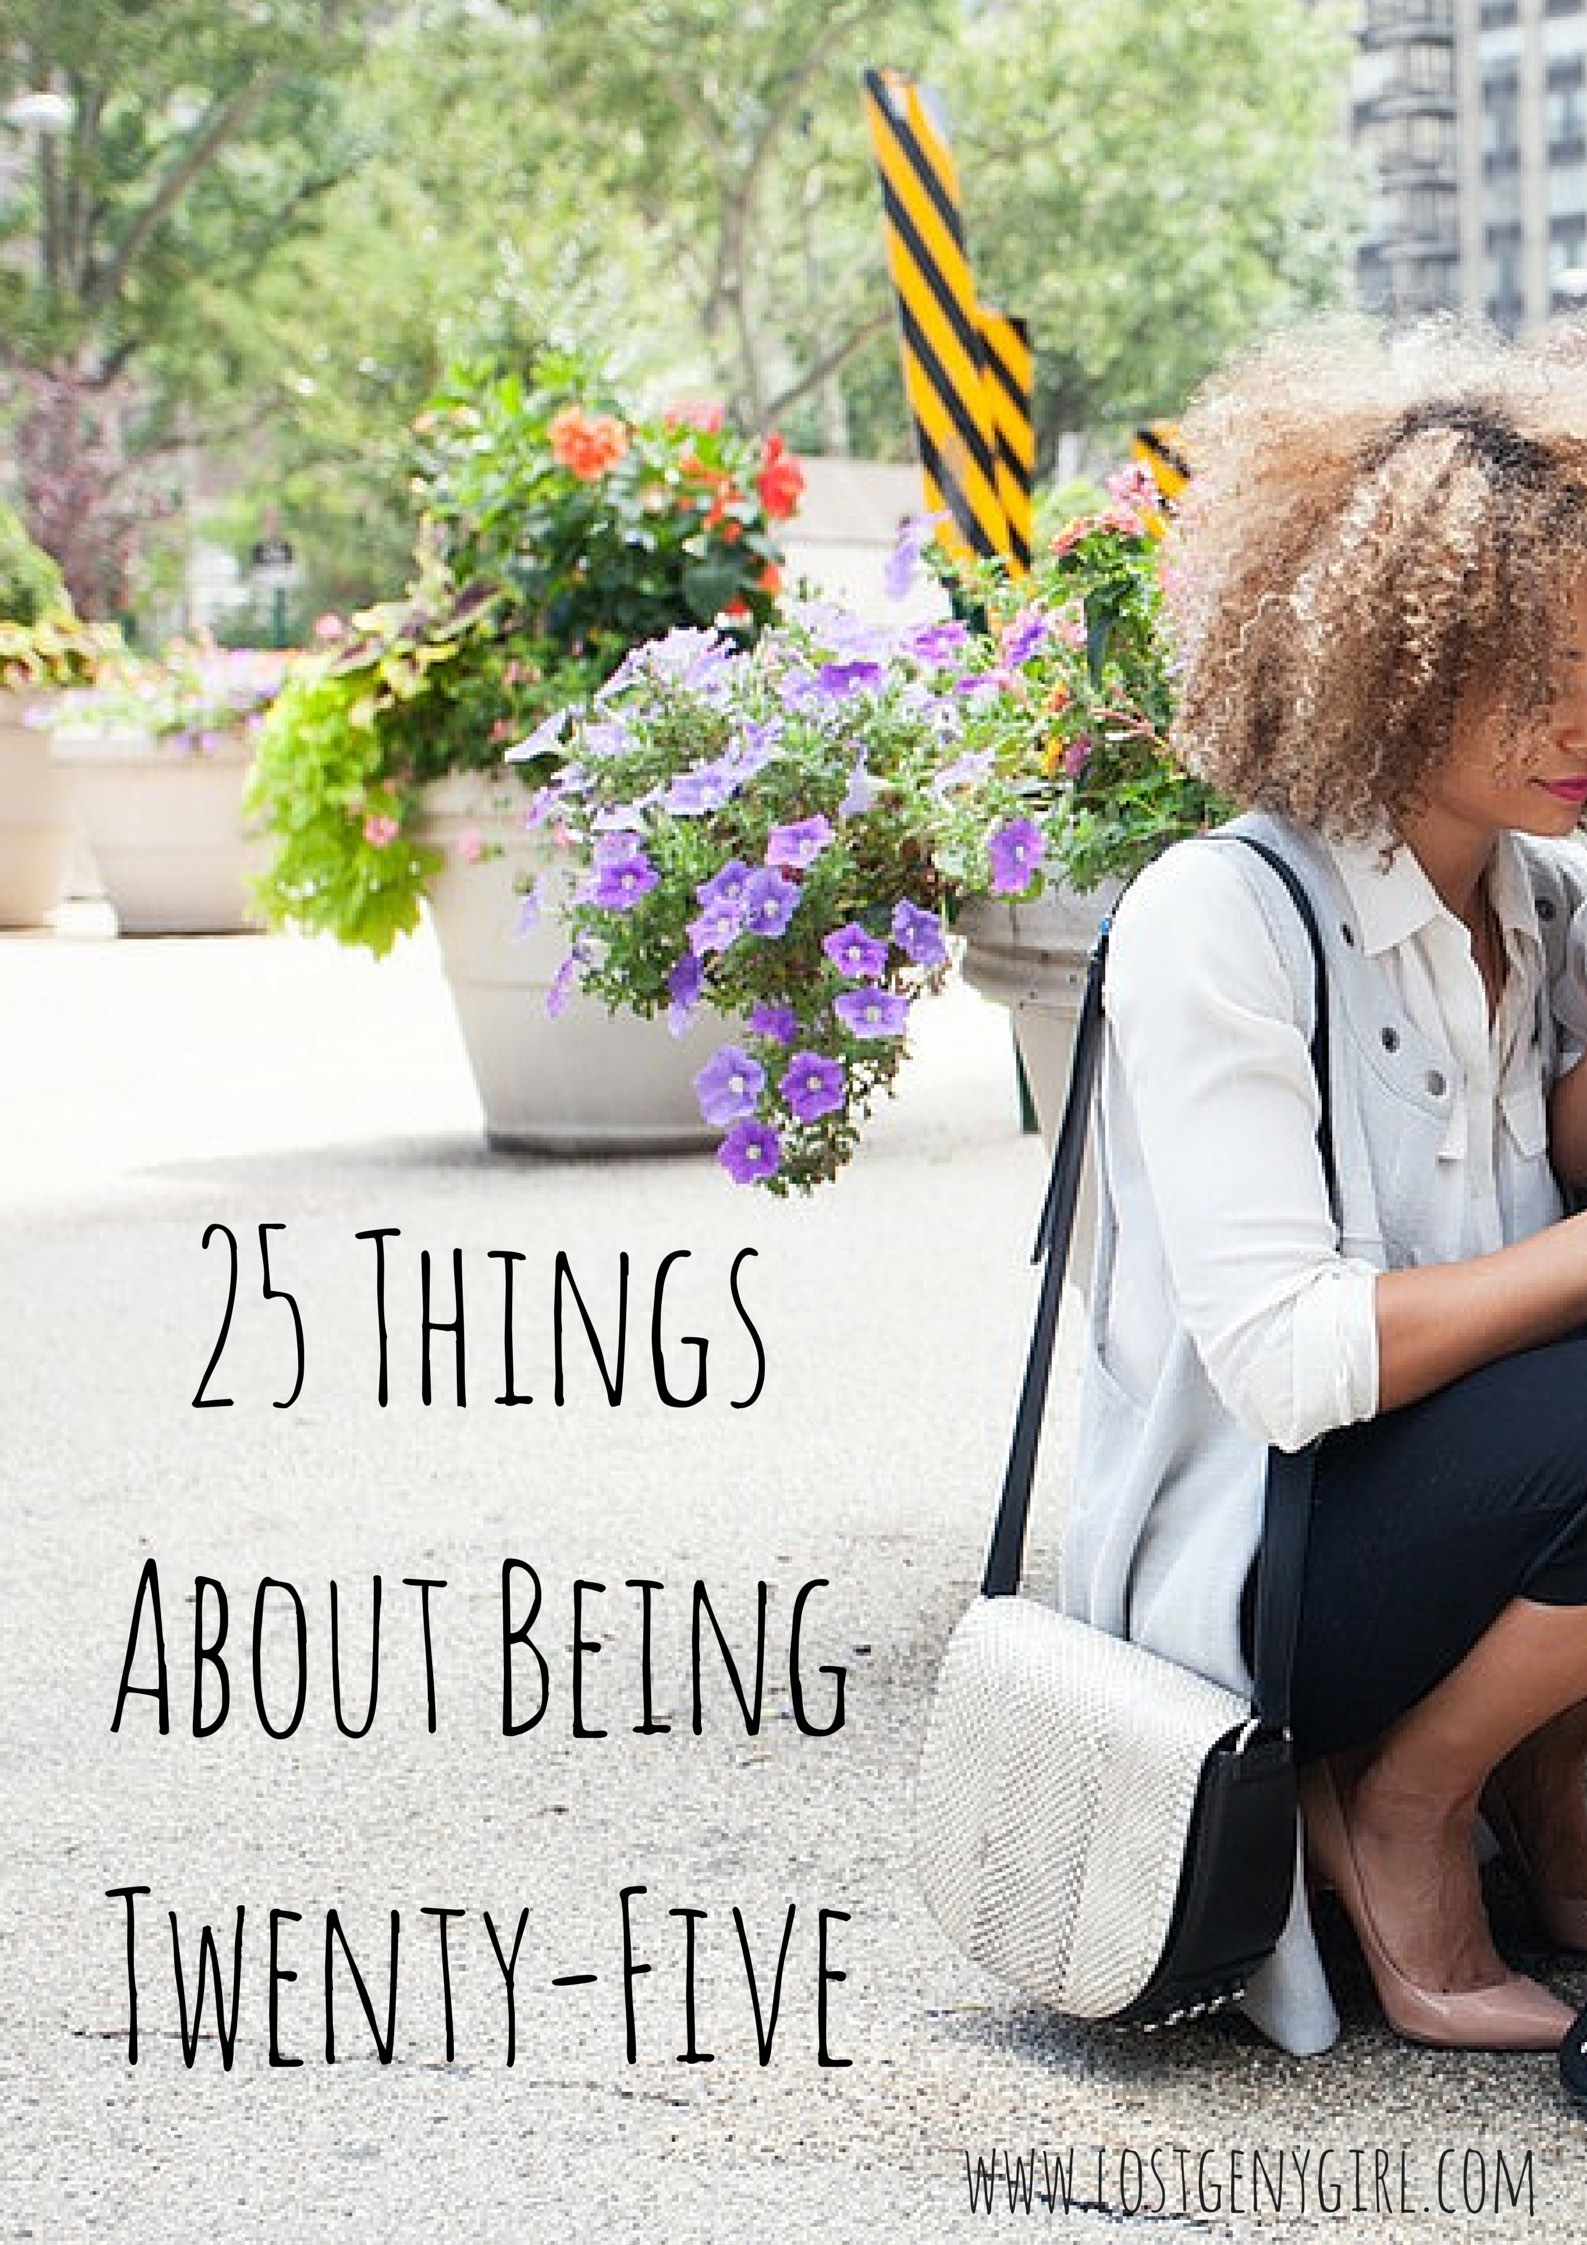 25-Things-About-Being-25